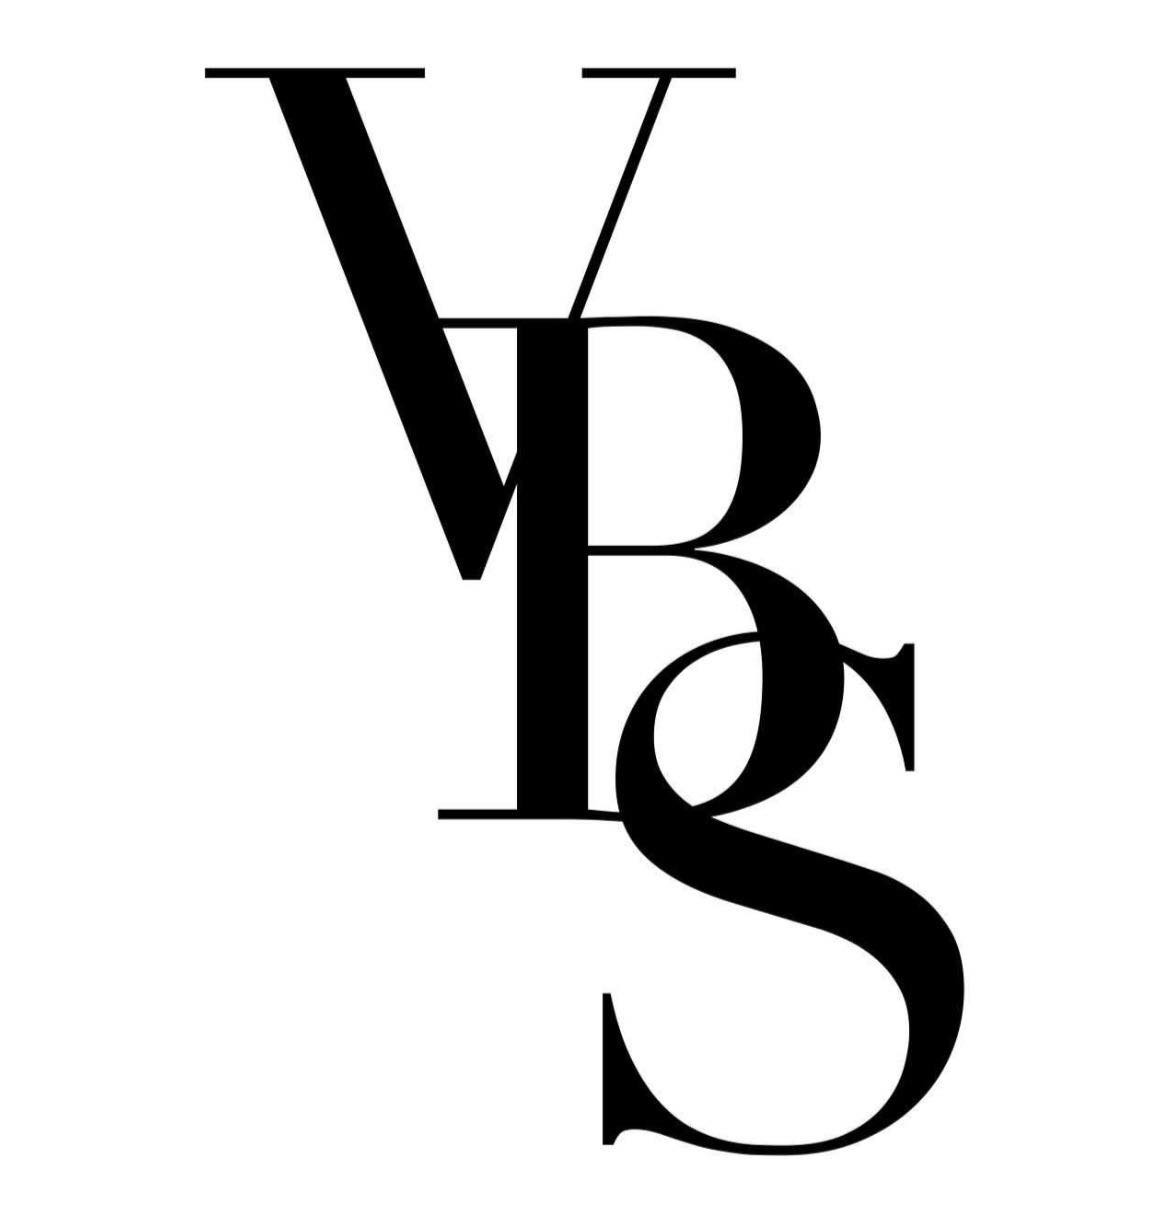 expert please what font?